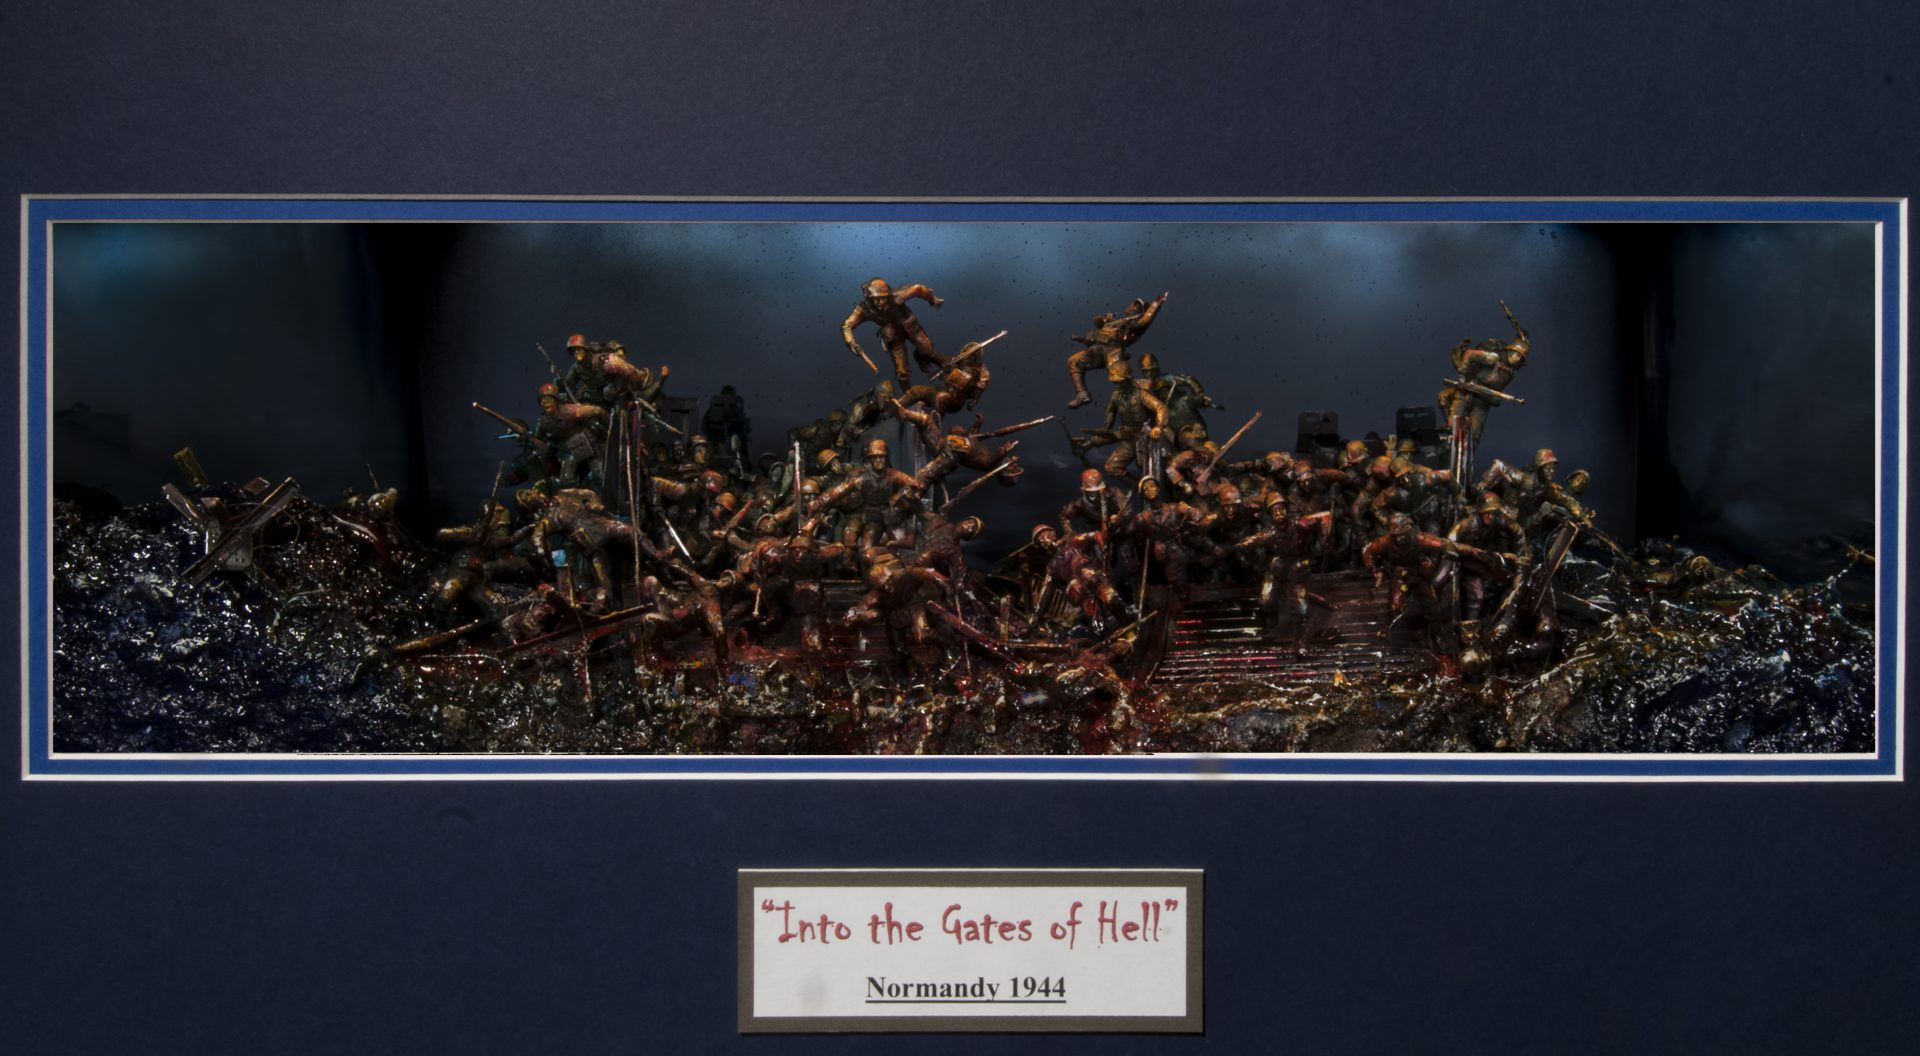 Into the Gates of Hell, Normandy 1944 - Darryl Audette, 2019